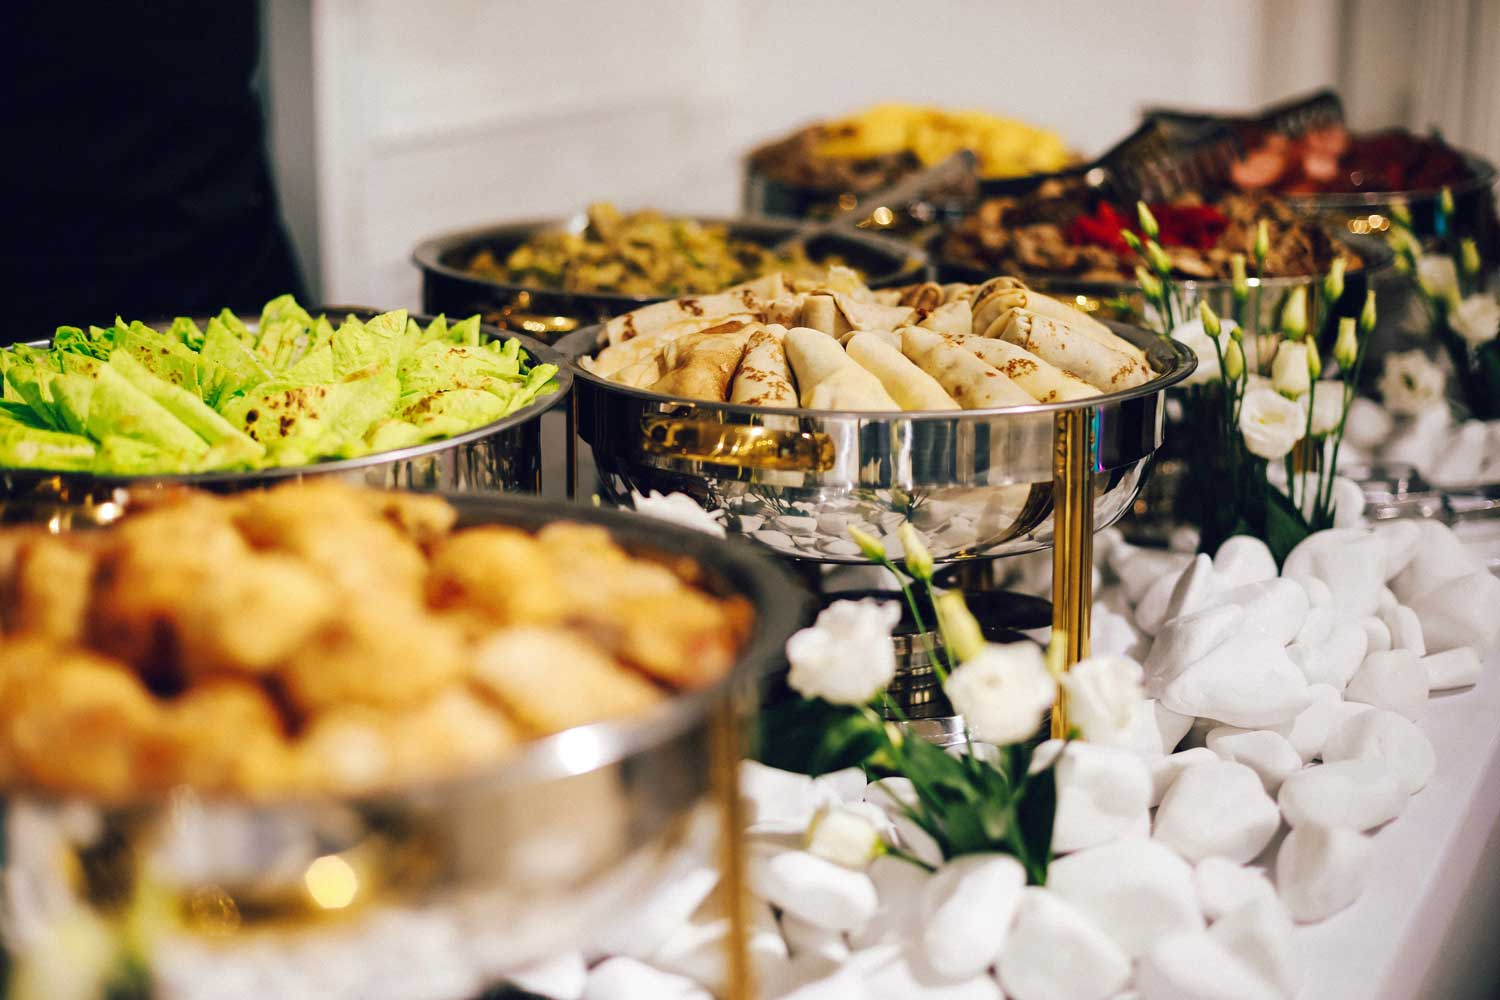 Catering And Party Service - Thai Garden Resort Pattaya Thailand